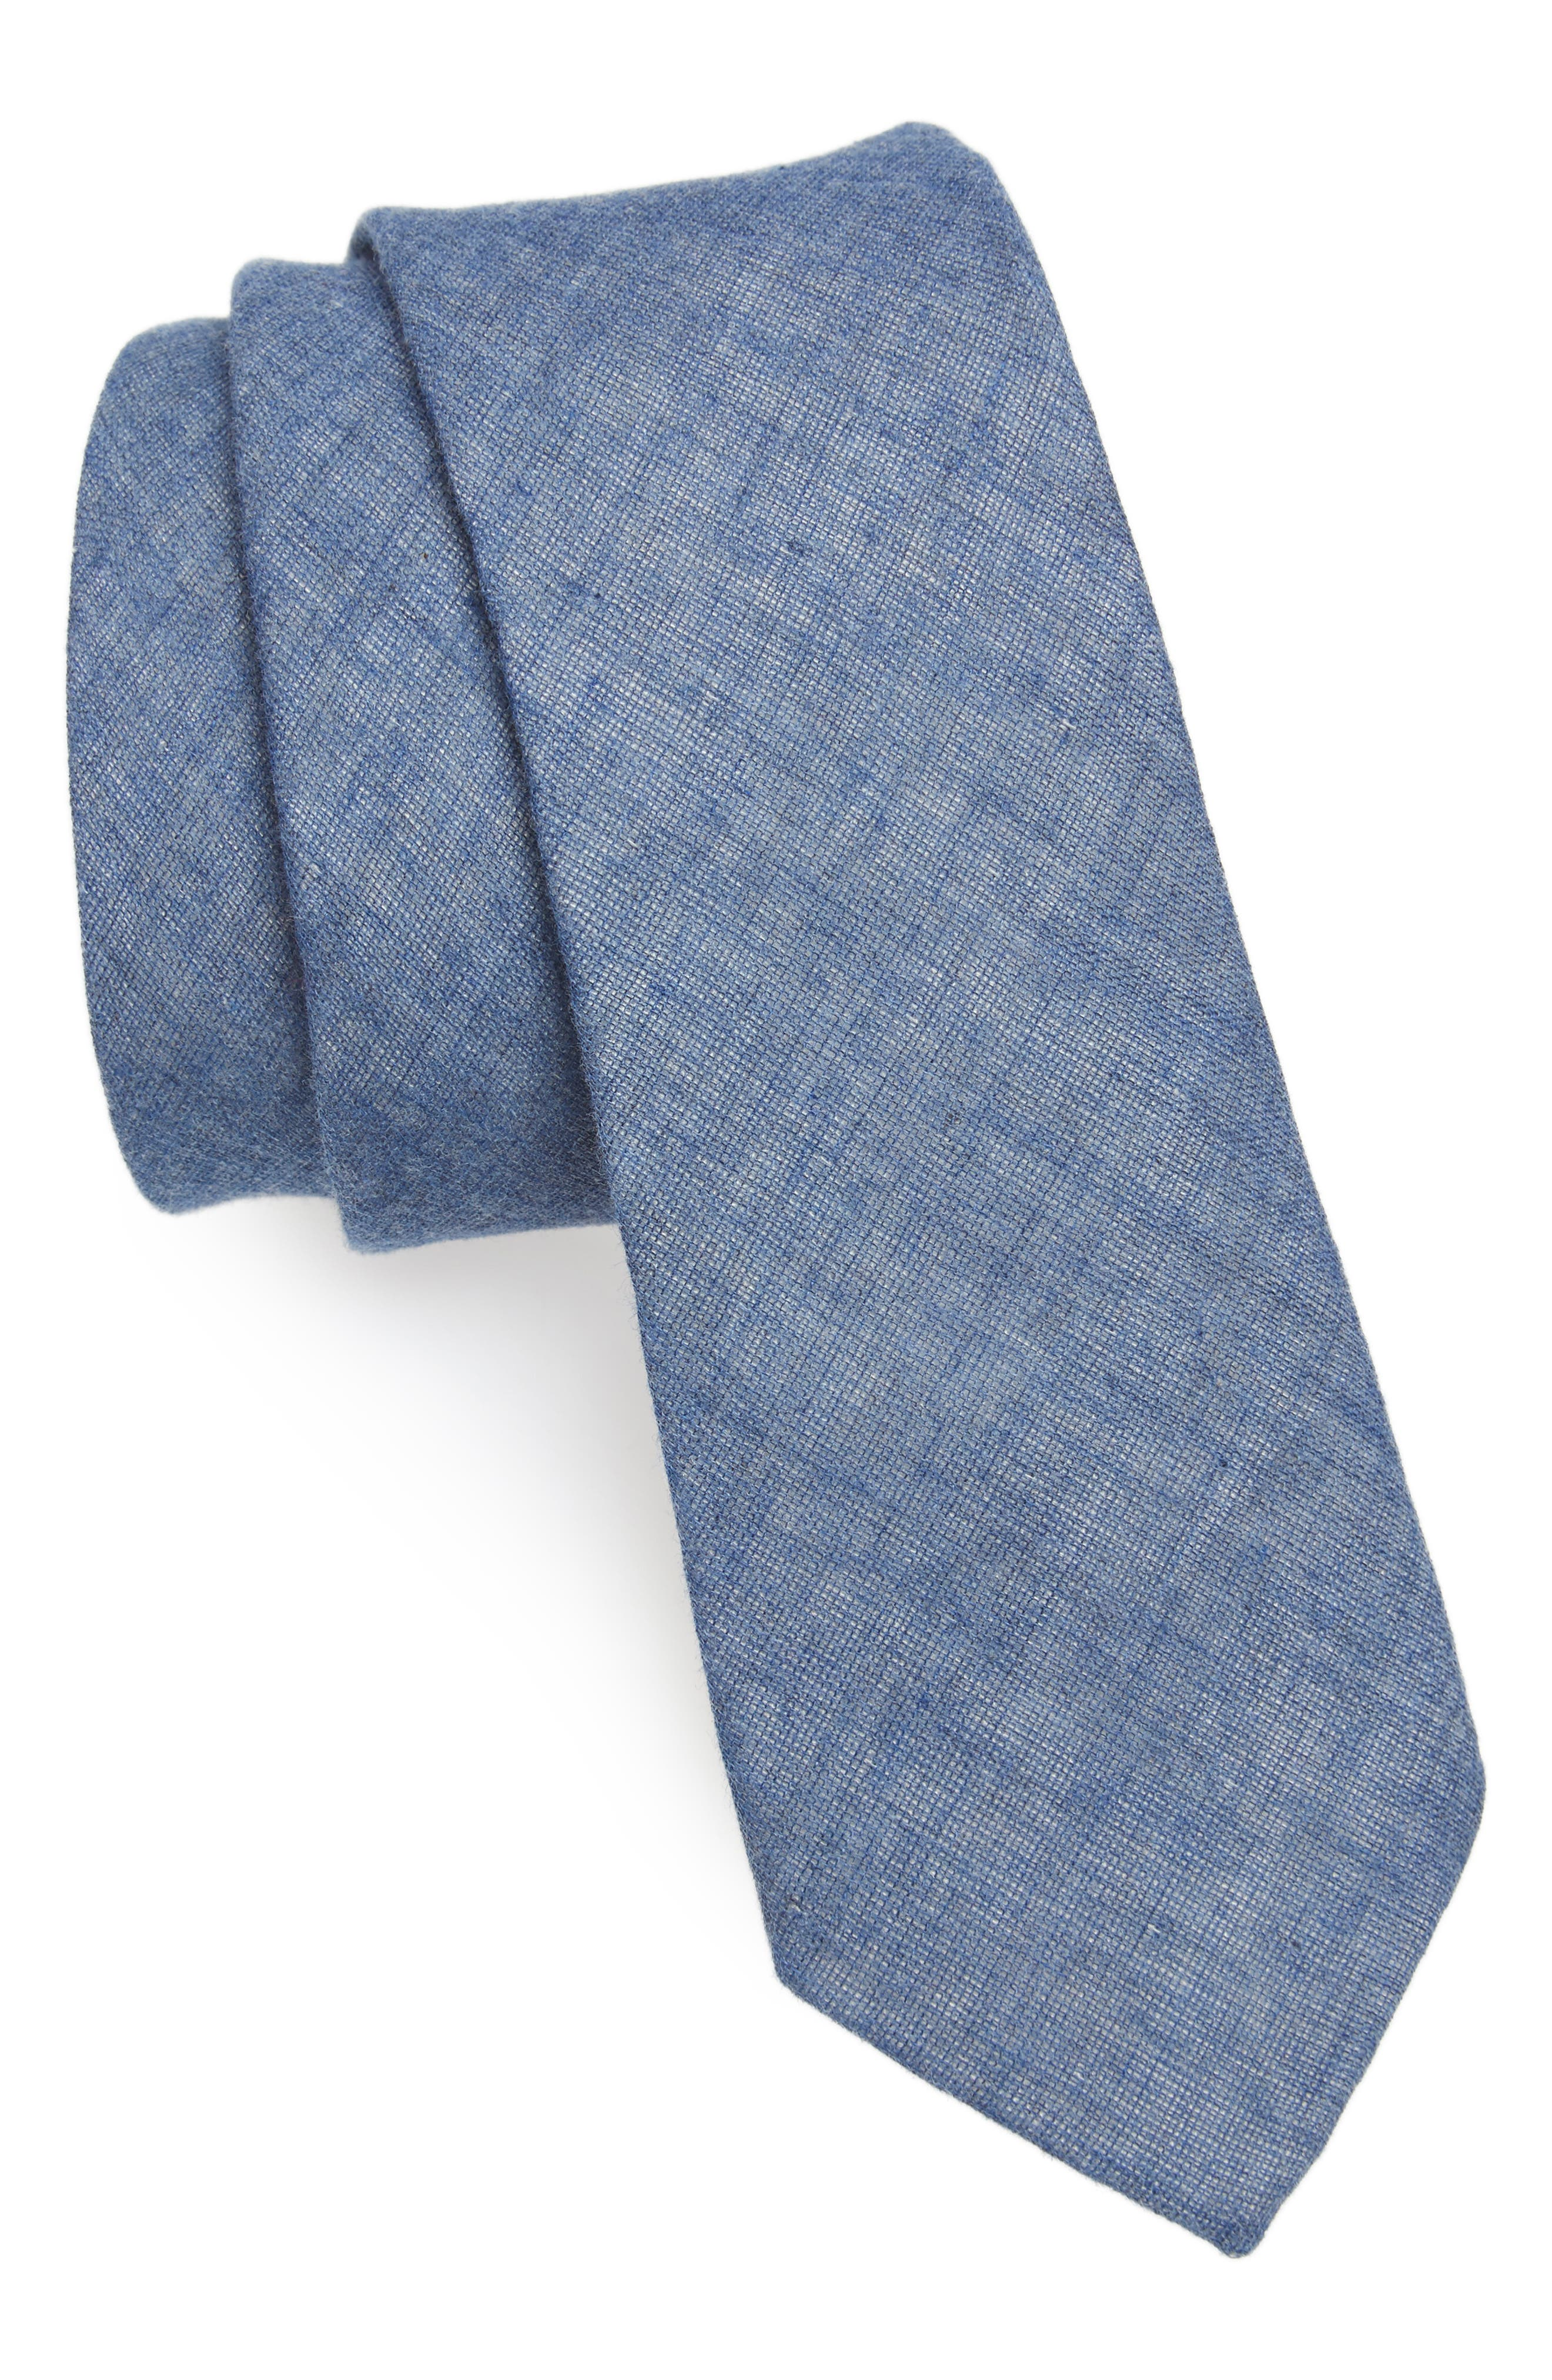 Bedell Solid Cotton Tie,                             Main thumbnail 3, color,